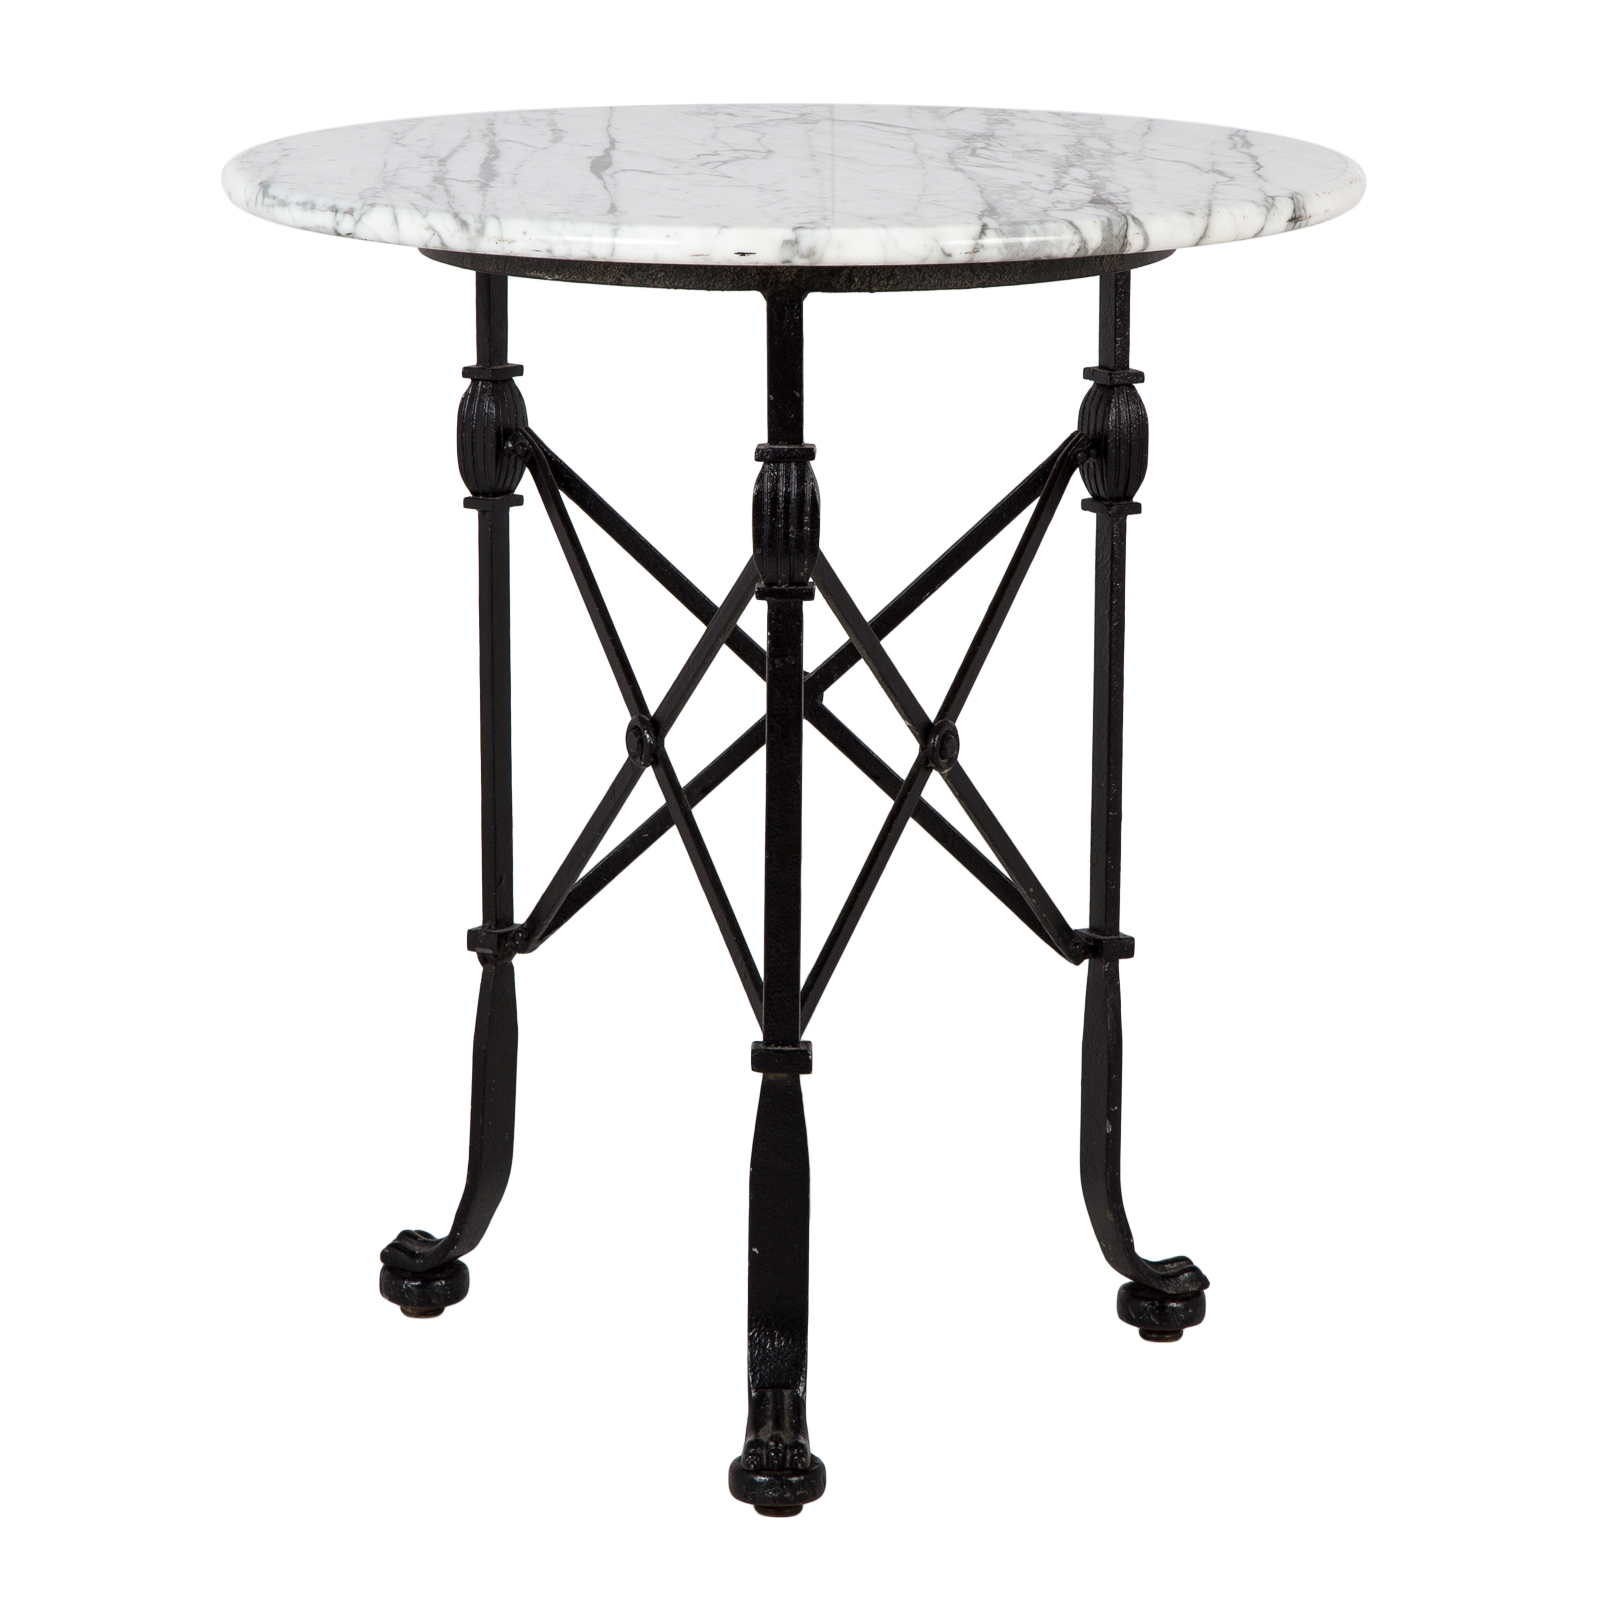 tall side size coffee unique accent tables black bar height table outdoor and chairs tier antique mid century dinette sets wooden patio with umbrella hole stein world multi drawer